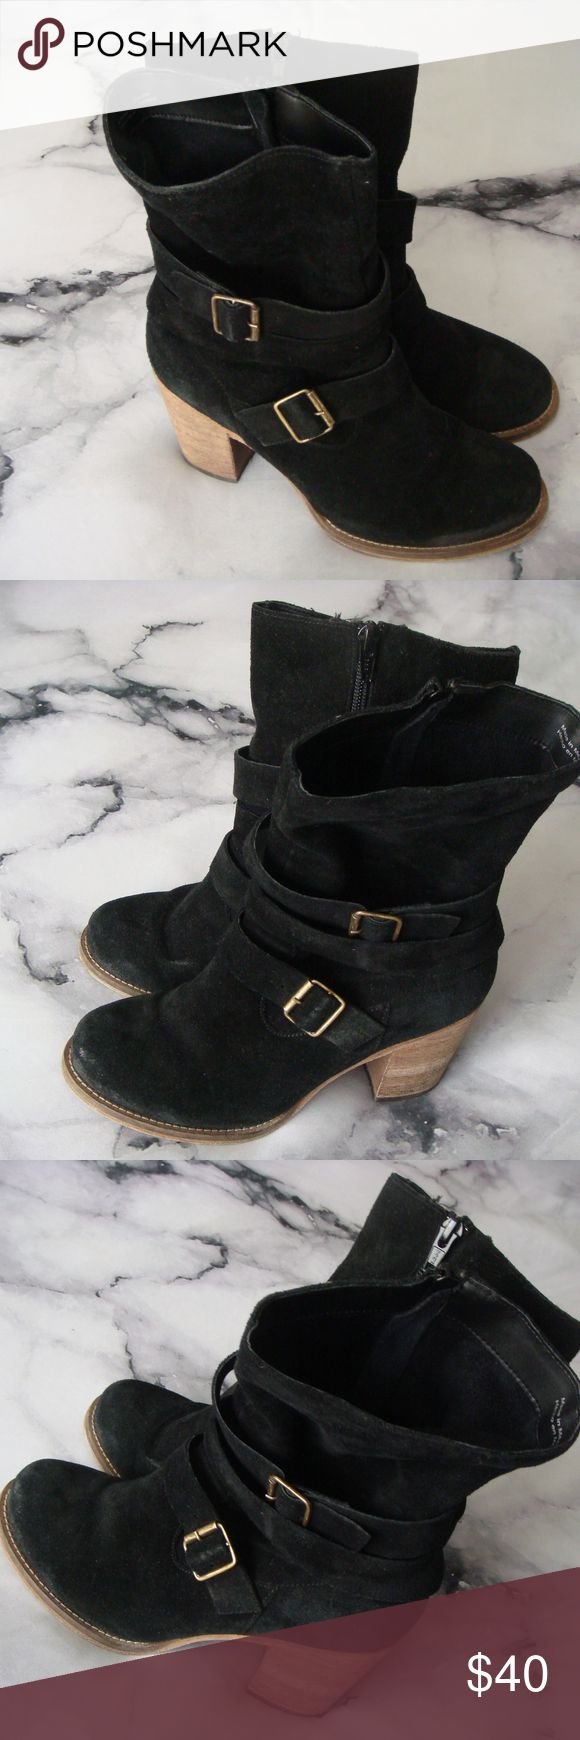 Charles By Charles David Laguna Suede Boots Item specifics Condition: Pre-owned: An item that has been used or worn previously. See the seller's listing for full details and ... Read more Brand: Charles David Heel Type:BlockUS Shoe Size (Women's):8 Heel Height:High (3 in. and Up)Style:Mid-Calf Boots Pattern:SolidMaterial:Suede Occasion:CasualColor: Black Fastening:ZipWidth:Medium (B, M) Country/Region of Manufacture:Mexico Charles David Shoes Ankle Boots & Booties